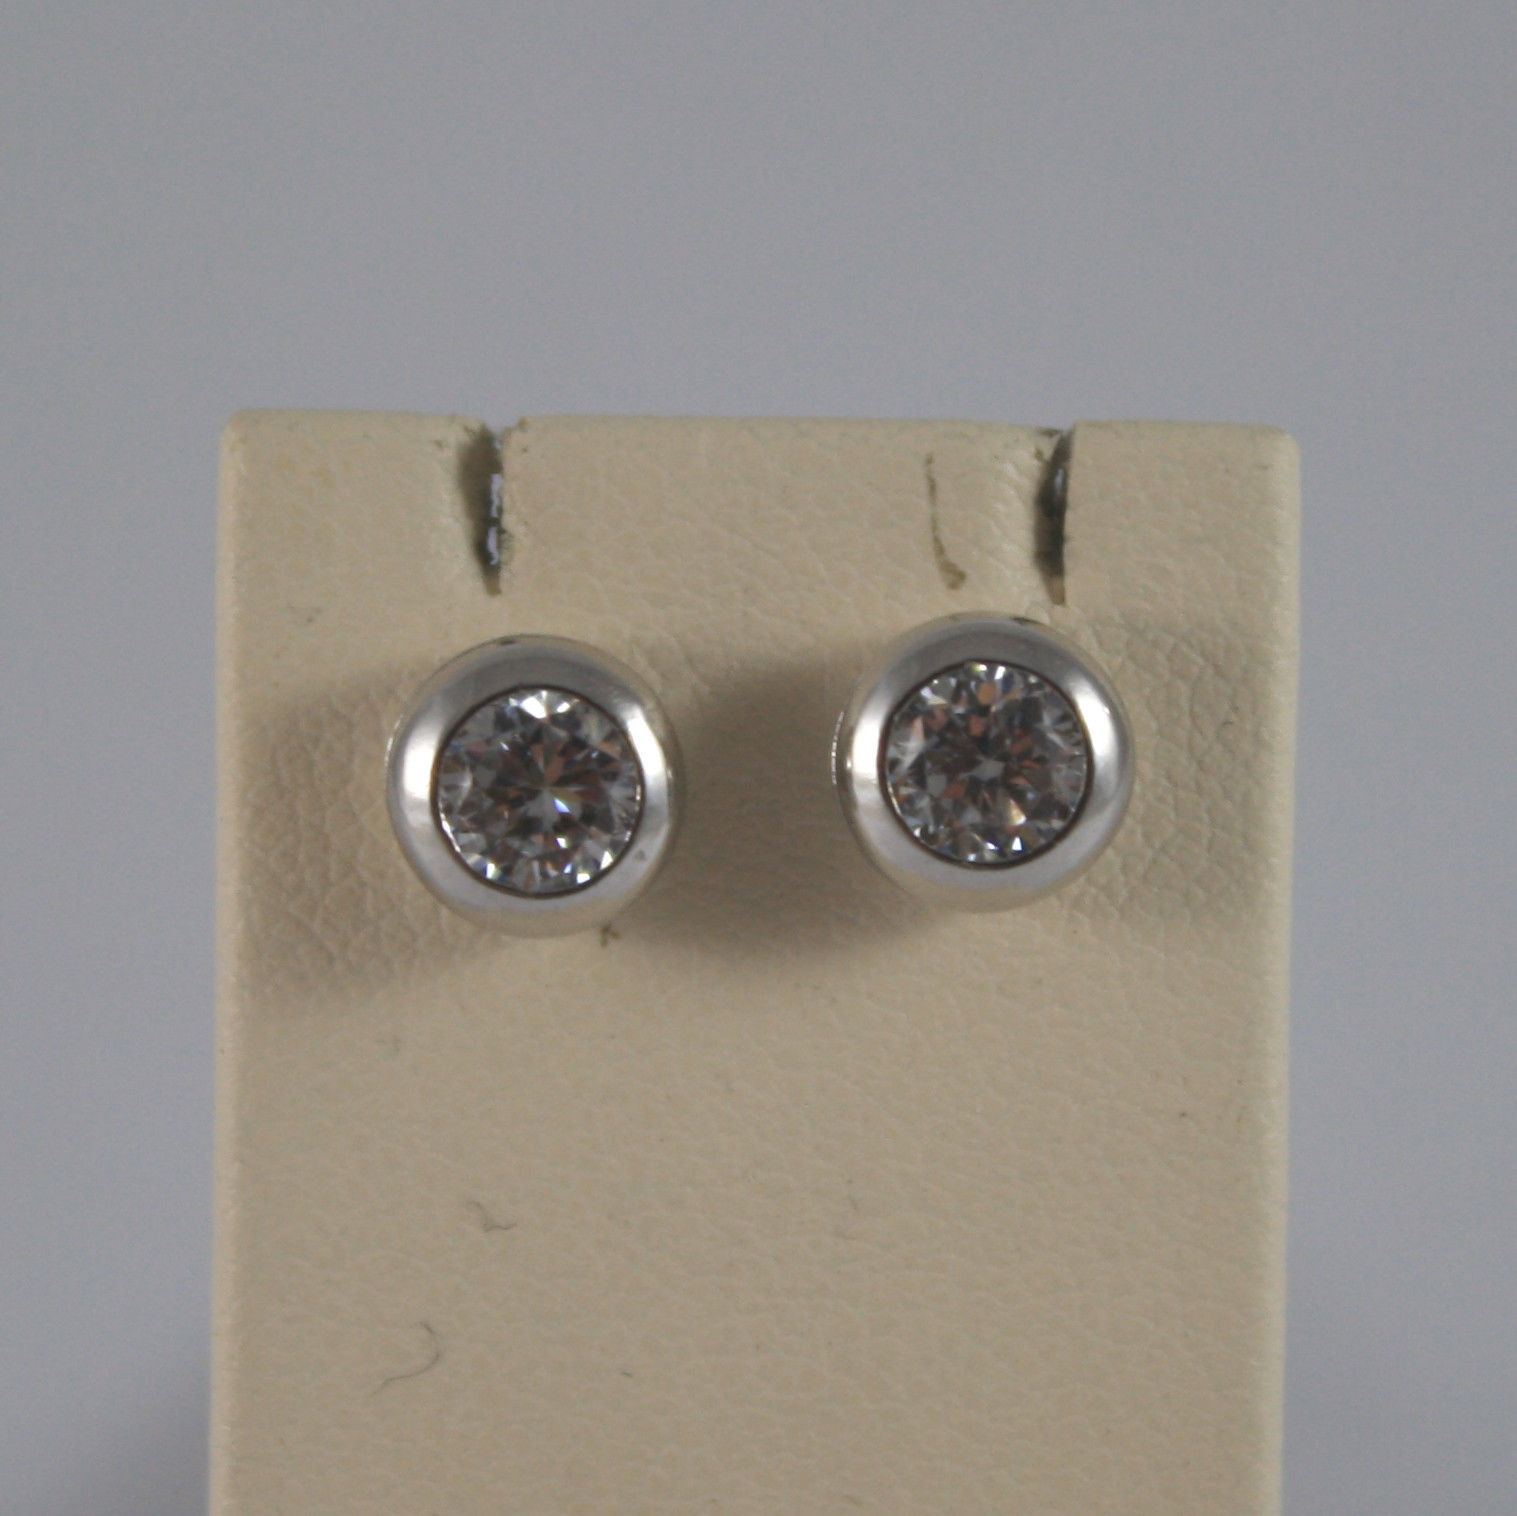 SOLID 18K WHITE GOLD EARRINGS, WITH ZIRCONIA, WIDTH 0,28 IN MADE IN ITALY